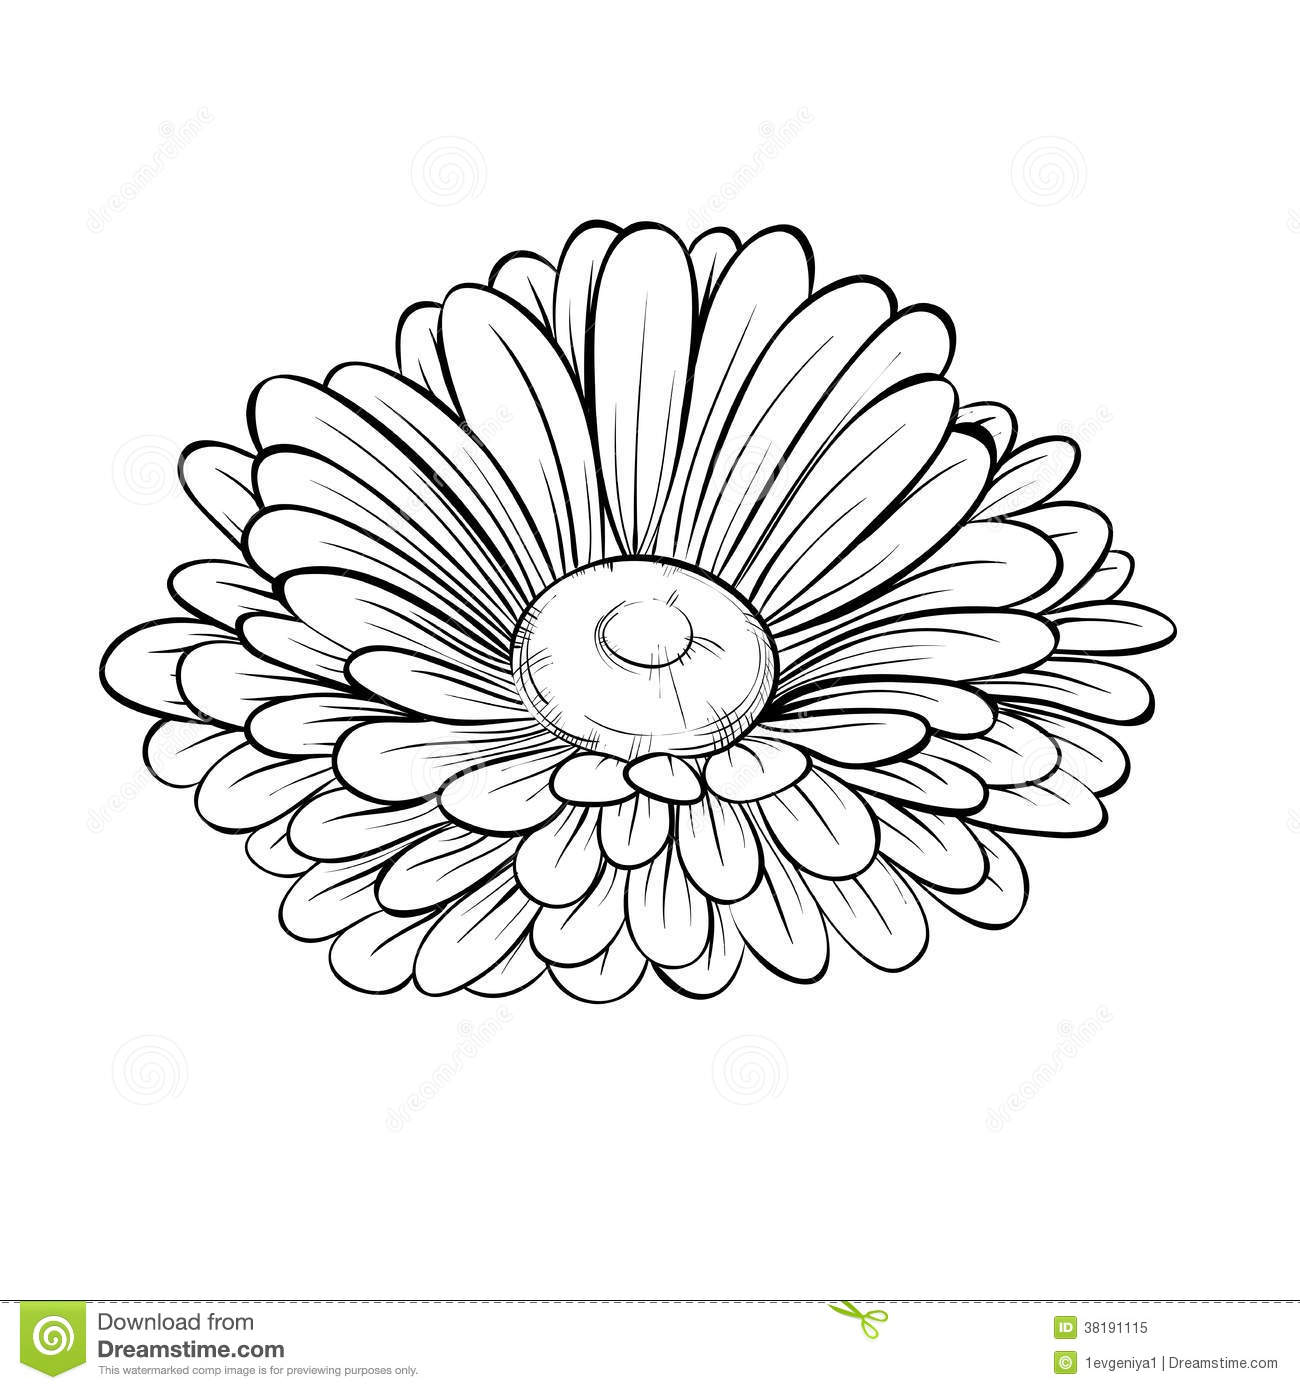 Gerbera Daisy Line Drawing Hand-drawn contour lines and